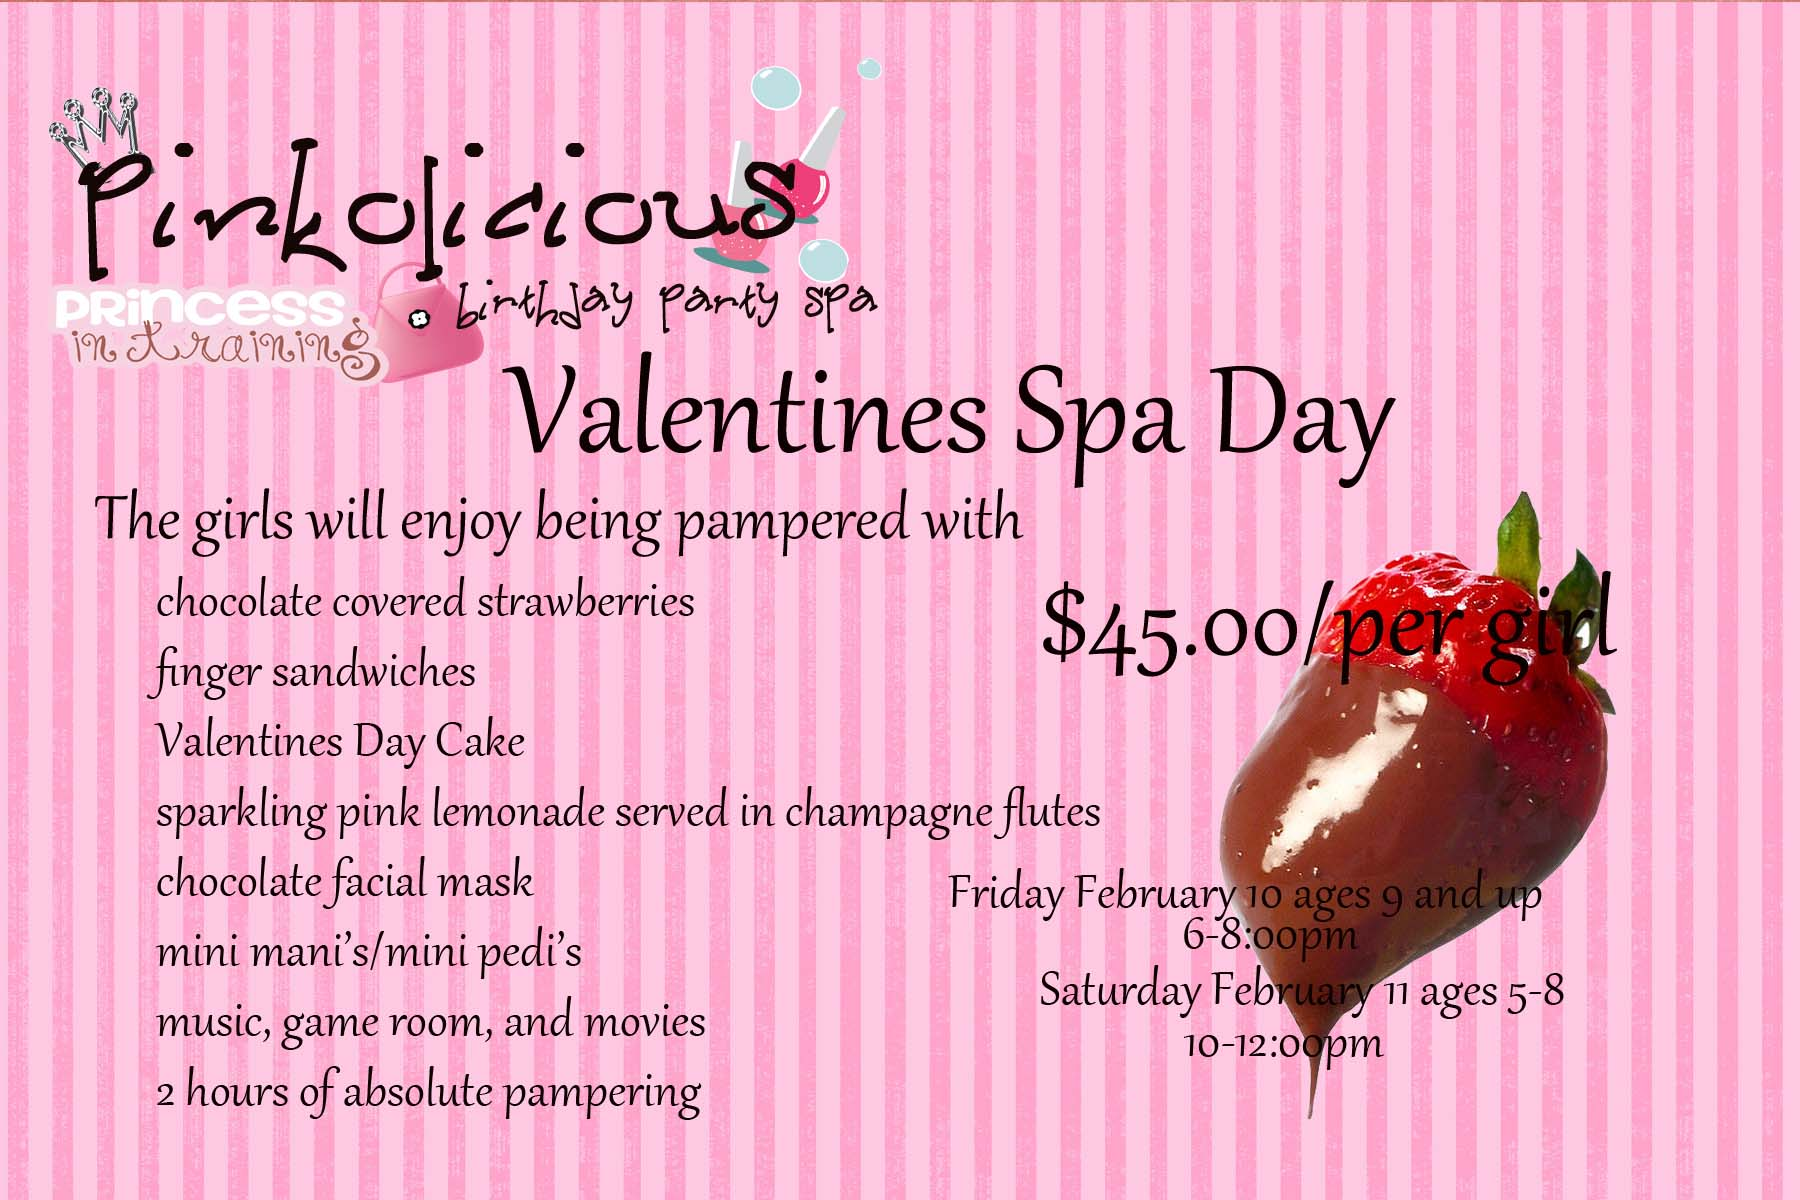 We Re Having A Valentines Spa Day Pinkolicious Birthday Party Spa